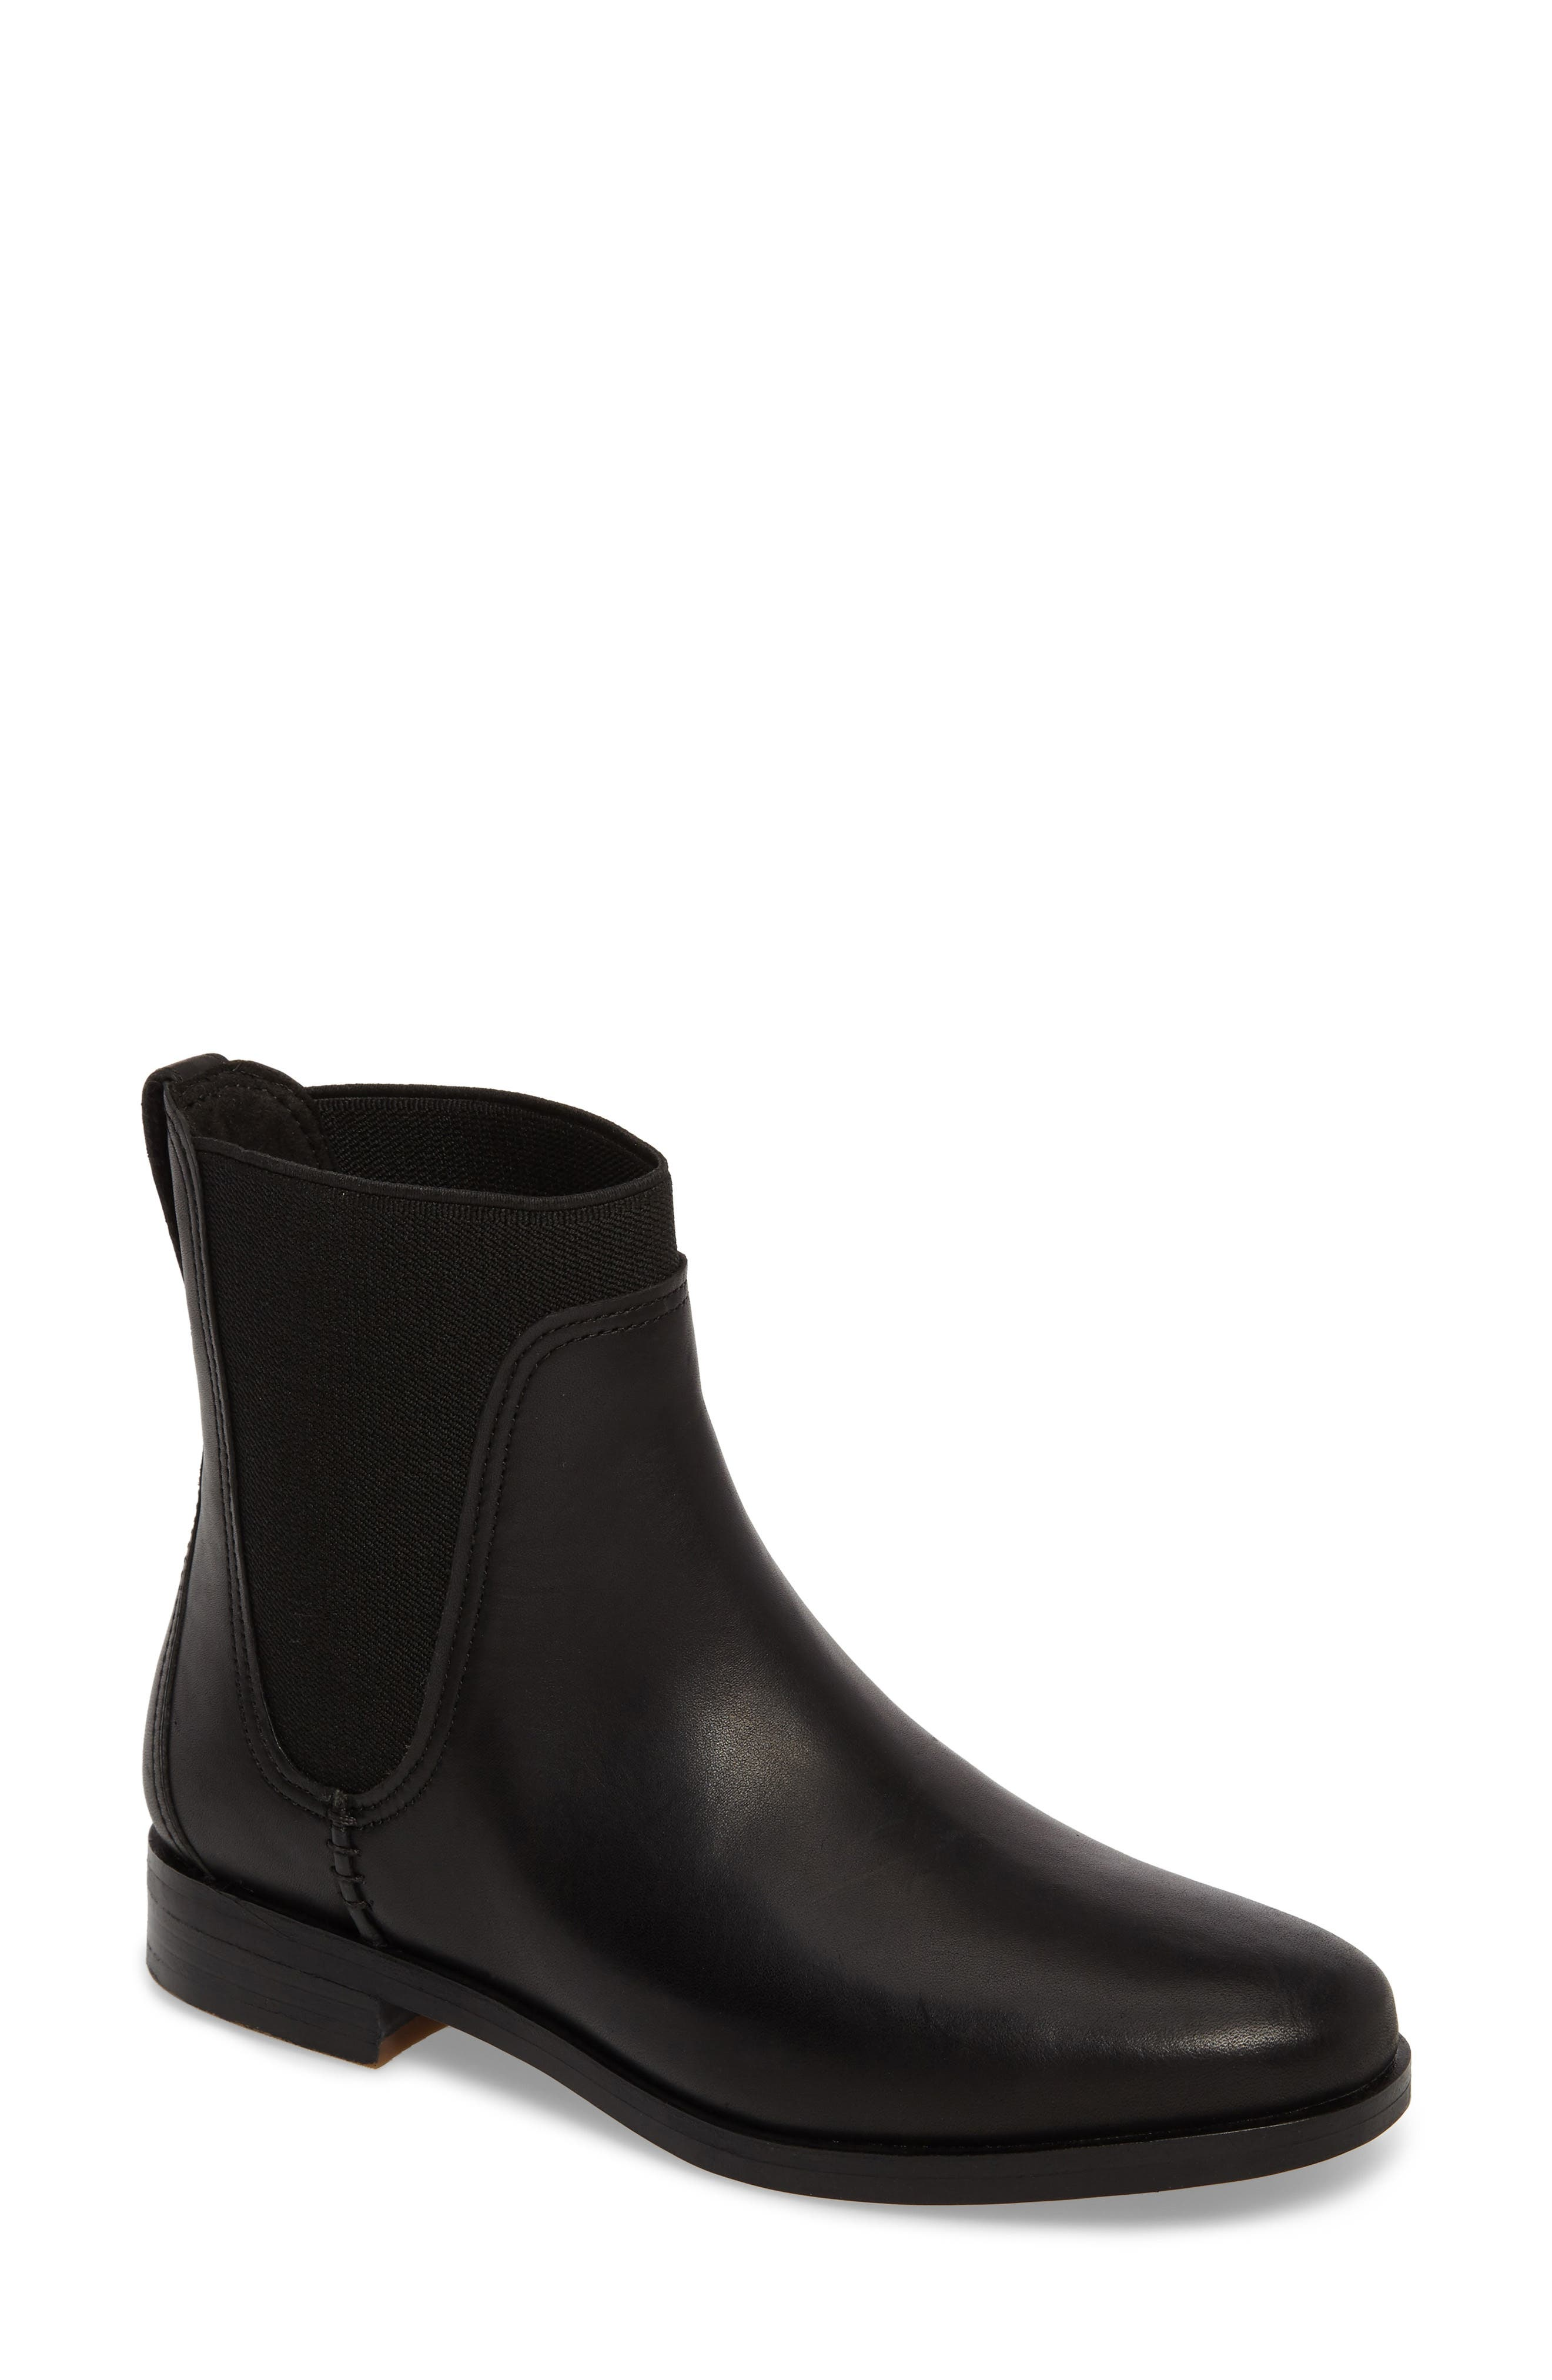 Somers Falls Water Resistant Chelsea Boot,                         Main,                         color, Jet Black Swank Leather